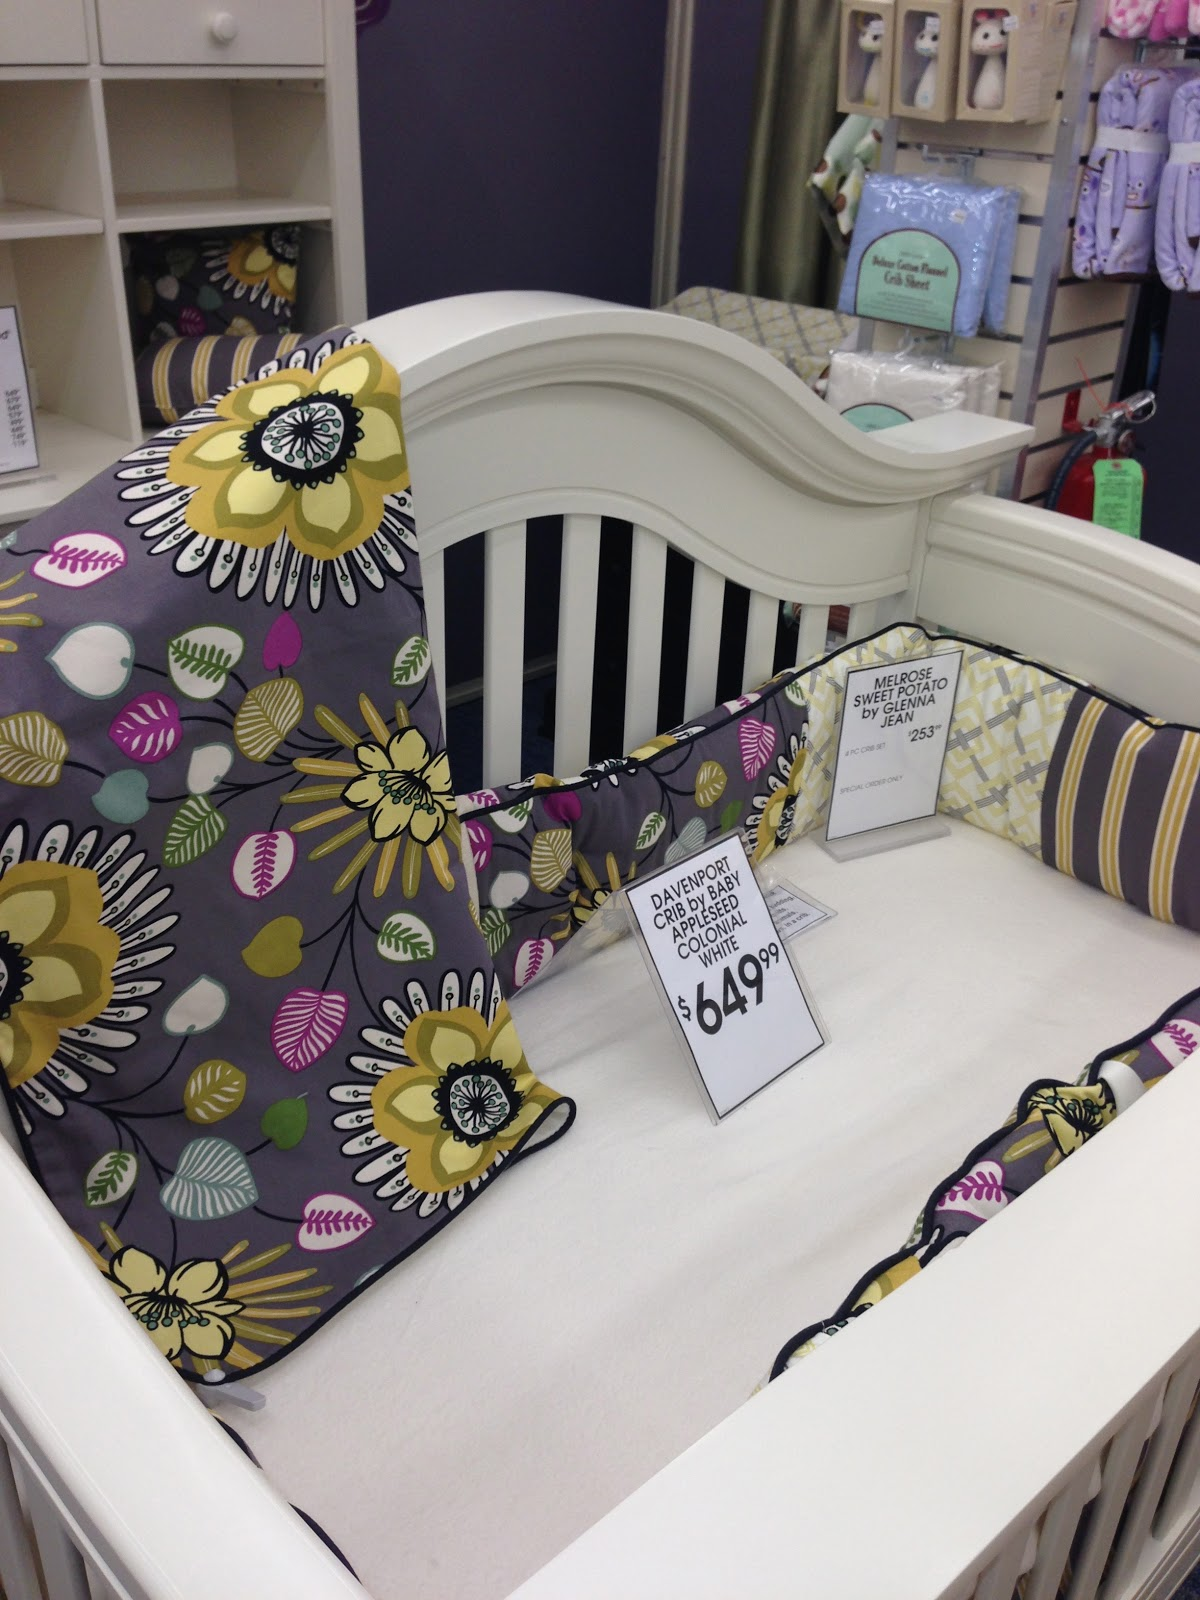 Baby cribs buy buy baby - Funny Enough At Buy Buy Baby This Is The Exact Crib Set And Bedding That We Chose